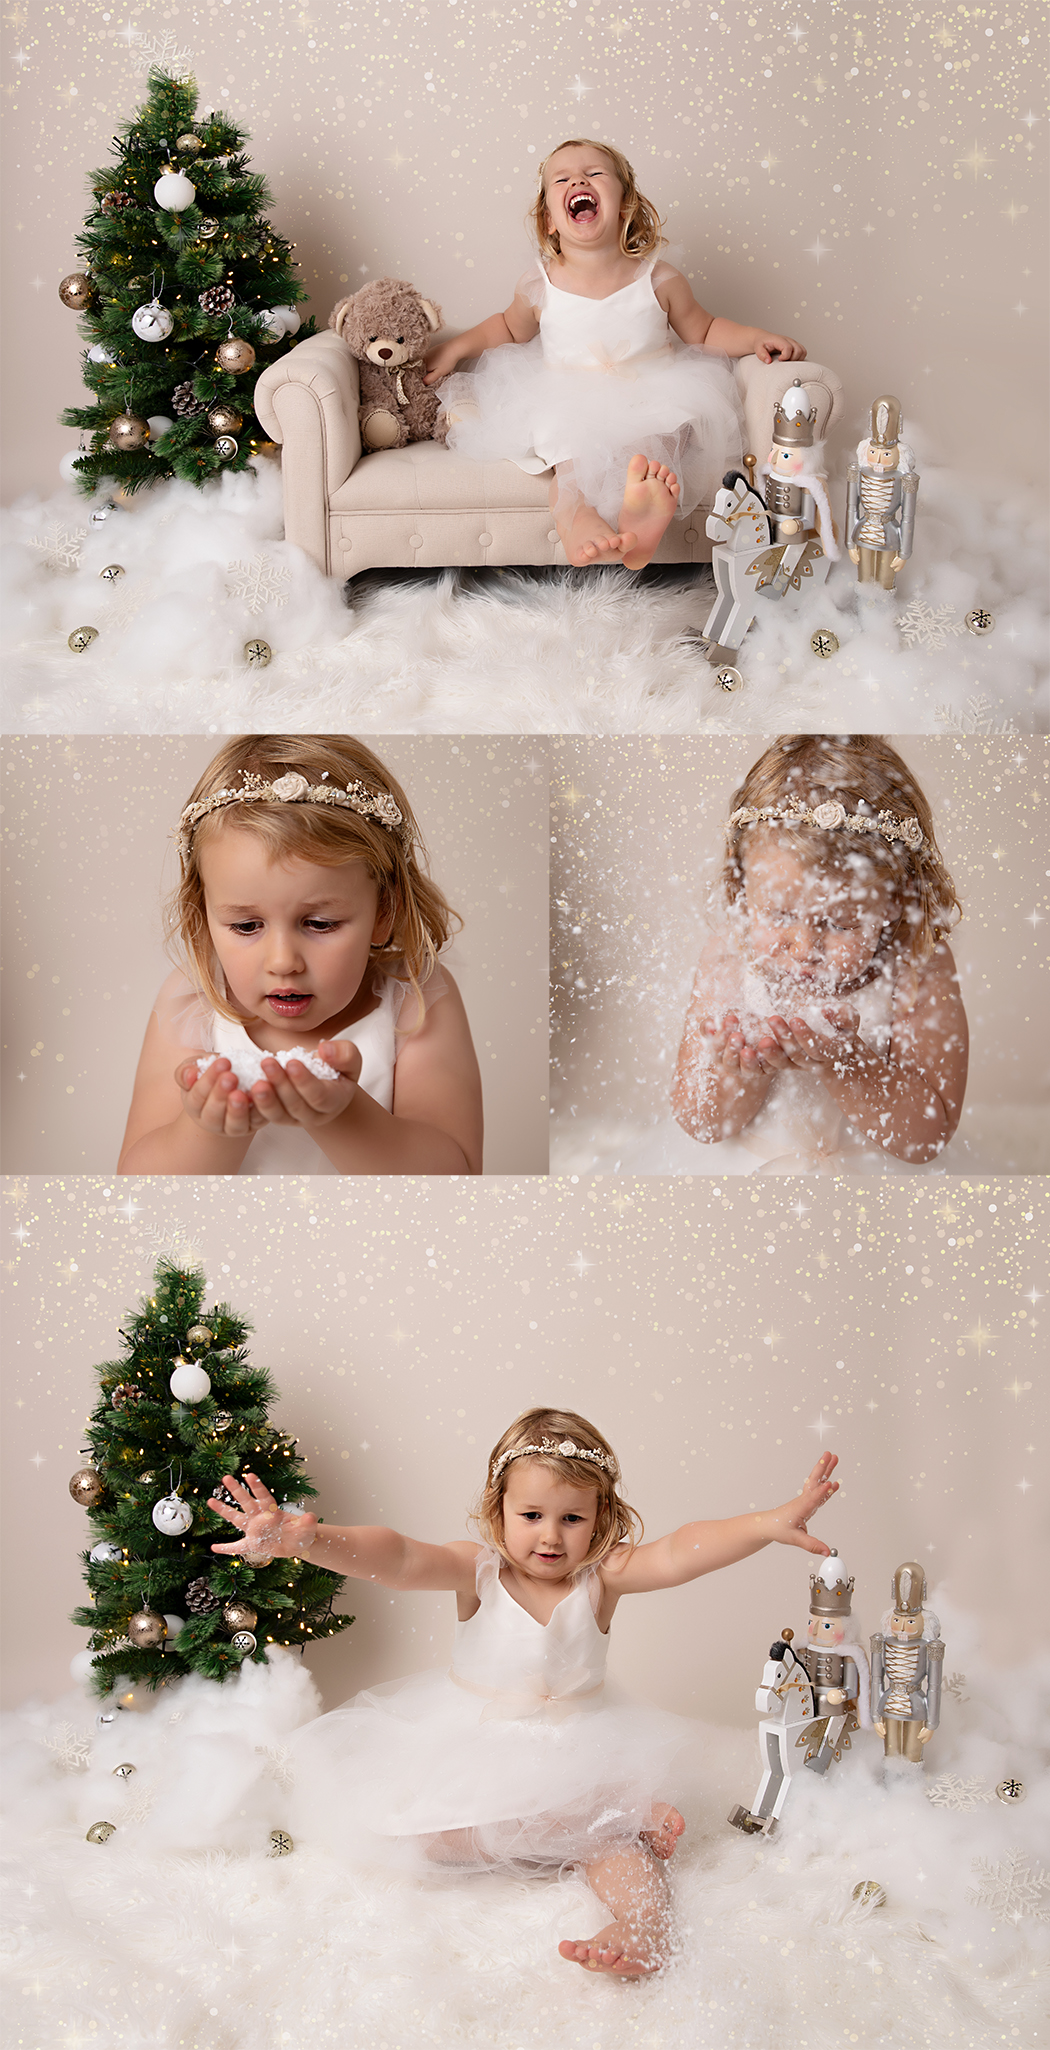 3 year old girl at her Christmas photoshoot playing with fake snow and laughing at her parents